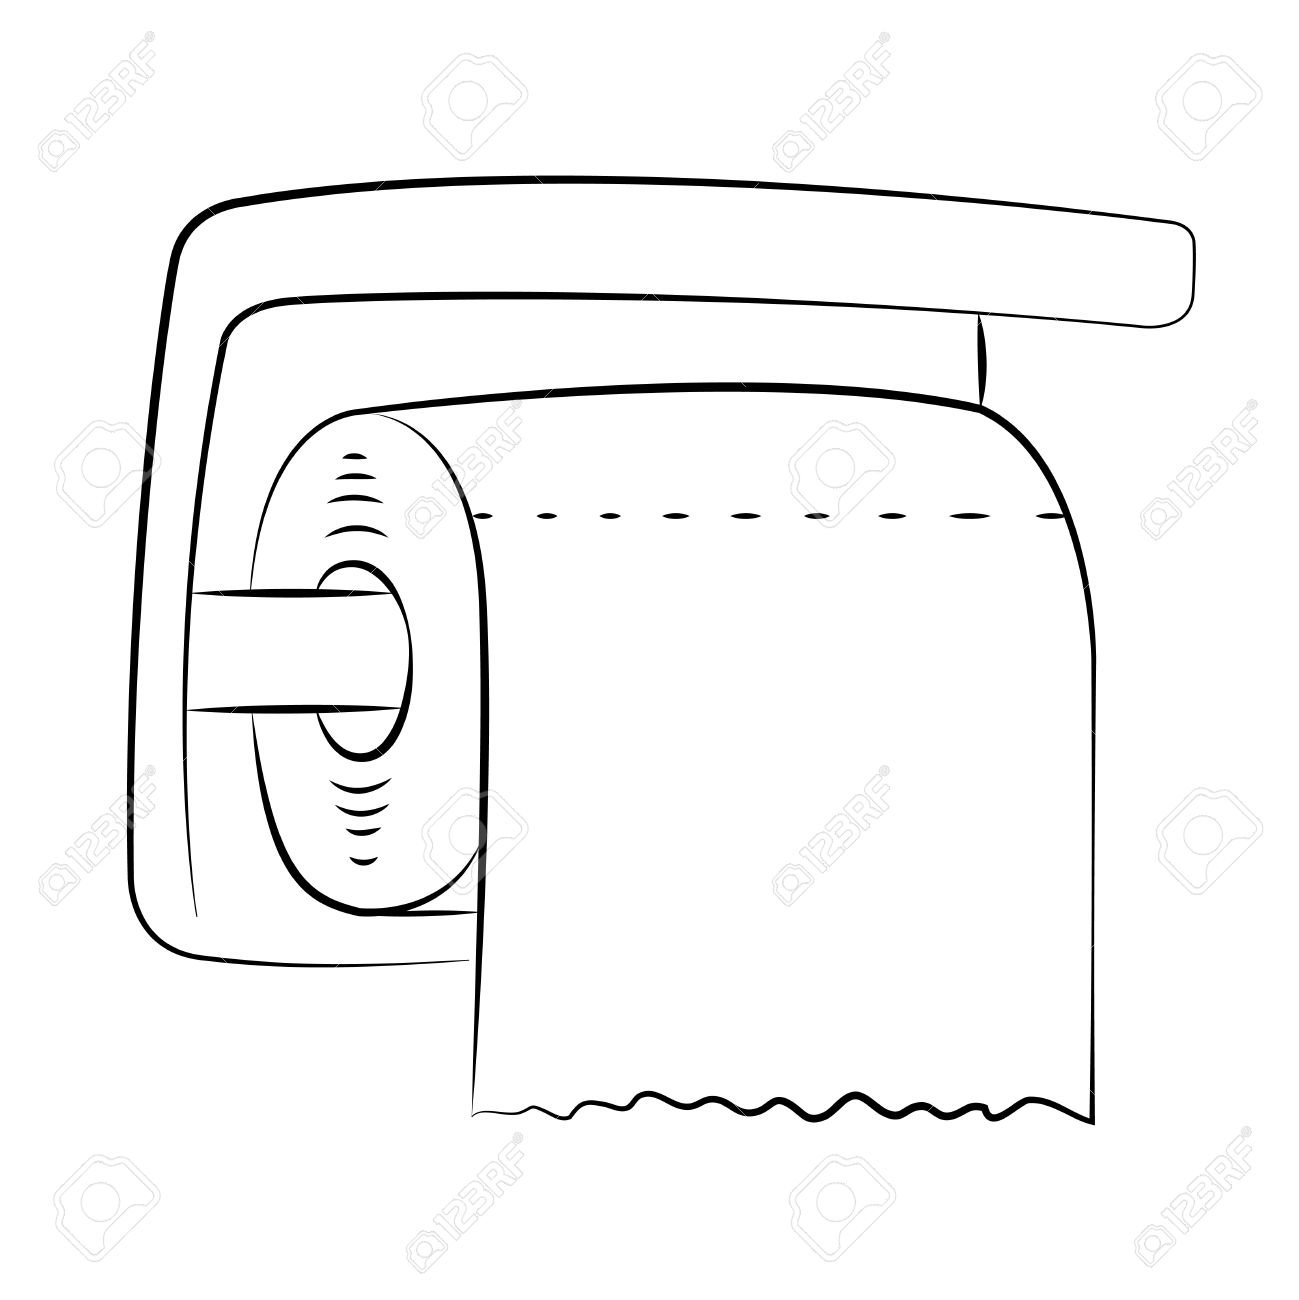 toilet paper clipart black and white wwwpixsharkcom